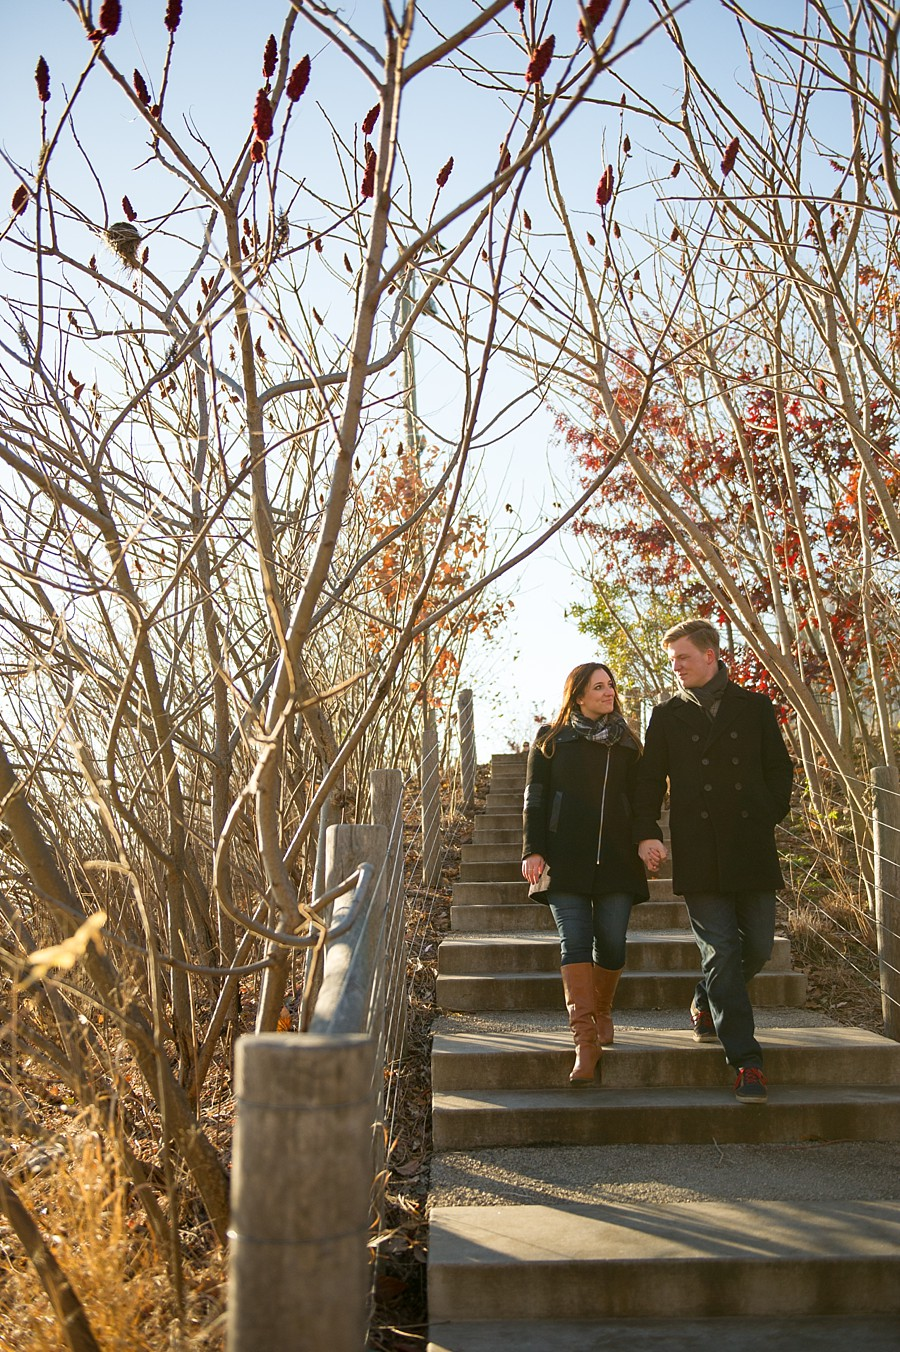 Brooklyn_Engagement_Session_RJ_04.jpg